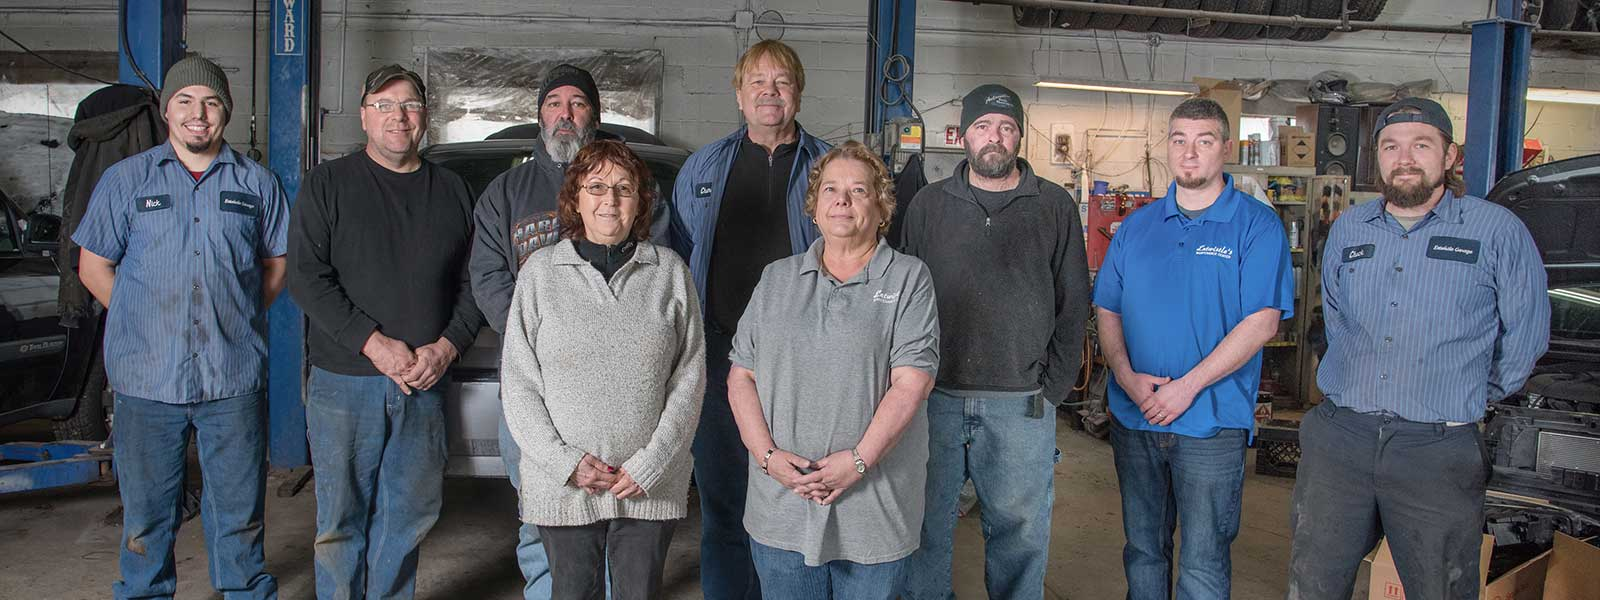 Auto Mechanics and staff at Entwistle's Garage - Auto Repair in Leicester, MA